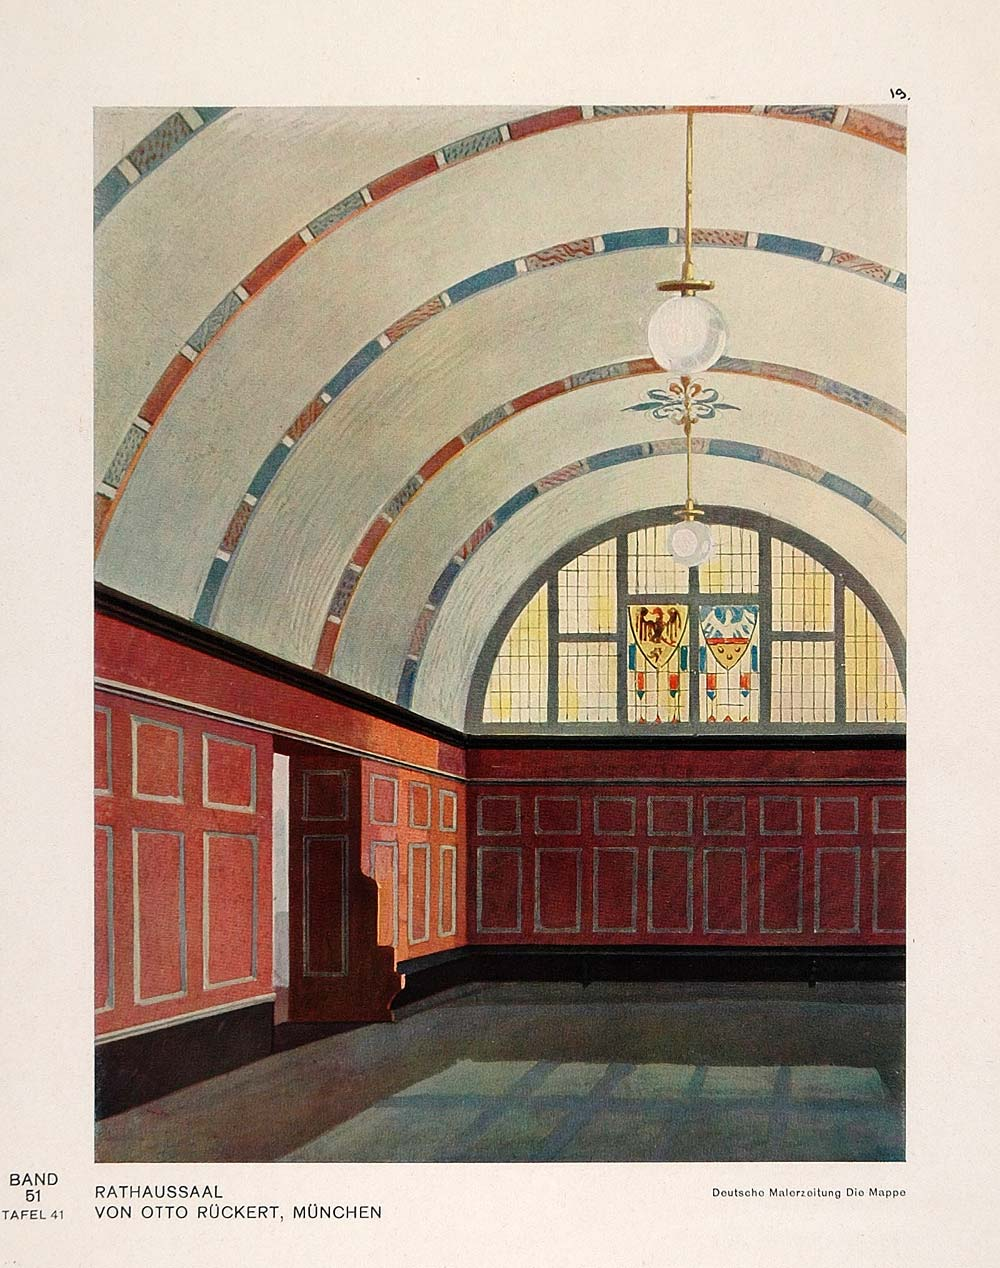 1931 Art Deco Interior Design Rathaus City Hall Print - ORIGINAL DMA1